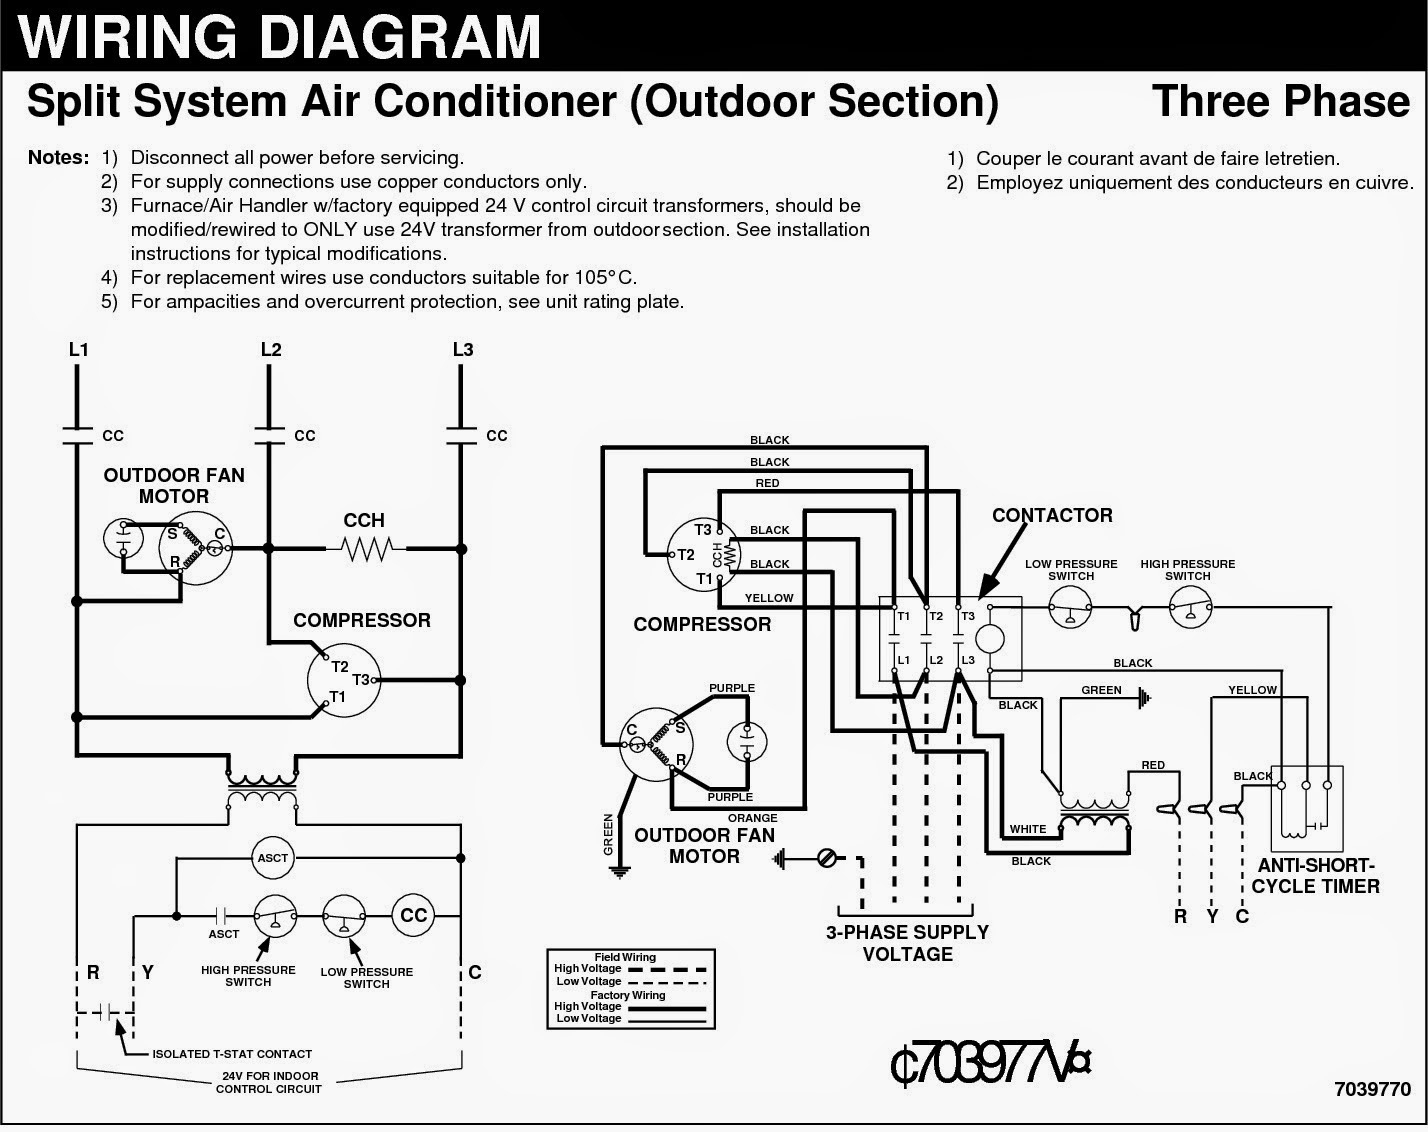 Hvac Fan Relay Wiring Diagram In Ac Low Voltage Diagram1 Brilliant - Hvac Relay Wiring Diagram